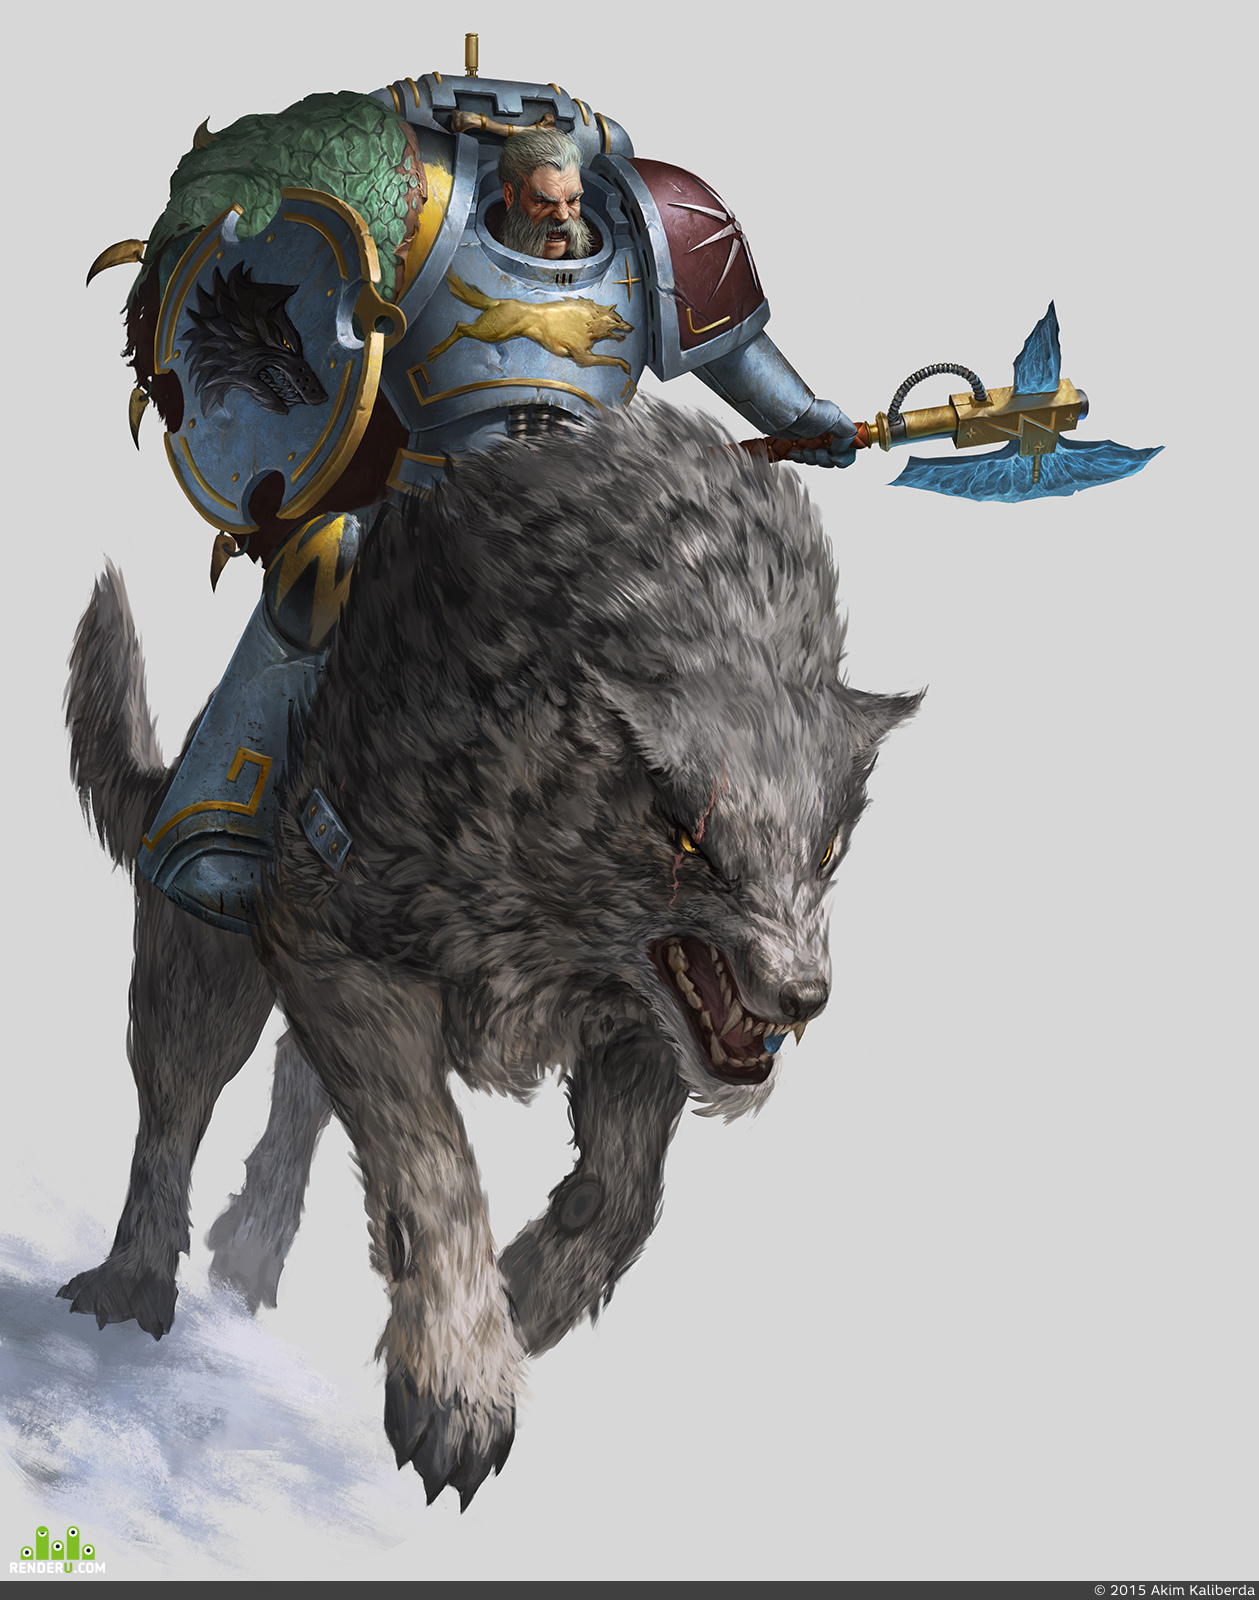 preview Warhammer 40k 'Curse of the Wulfen'